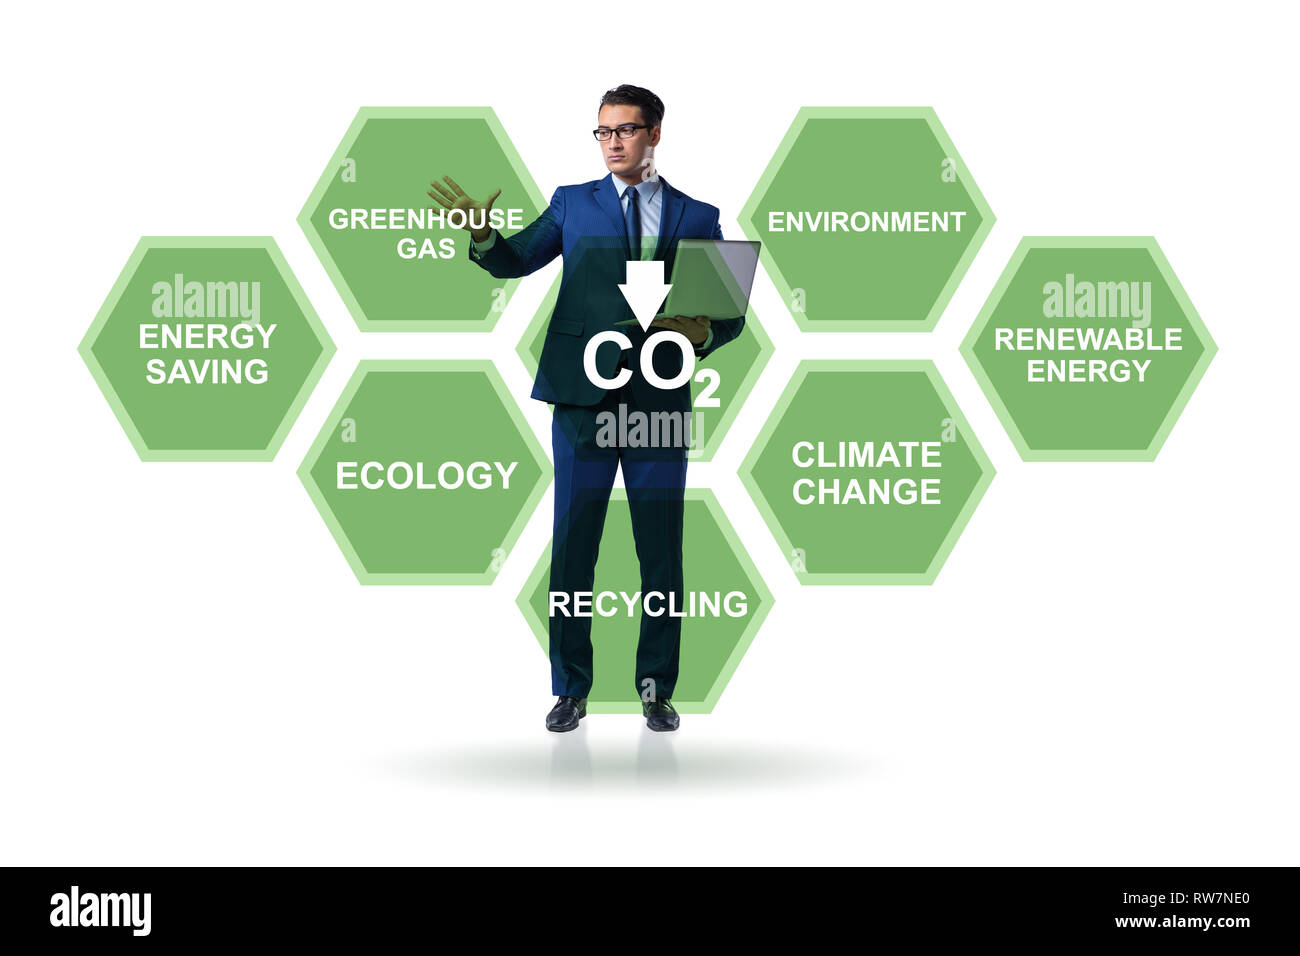 Businessman in ecology and environment concept - Stock Image